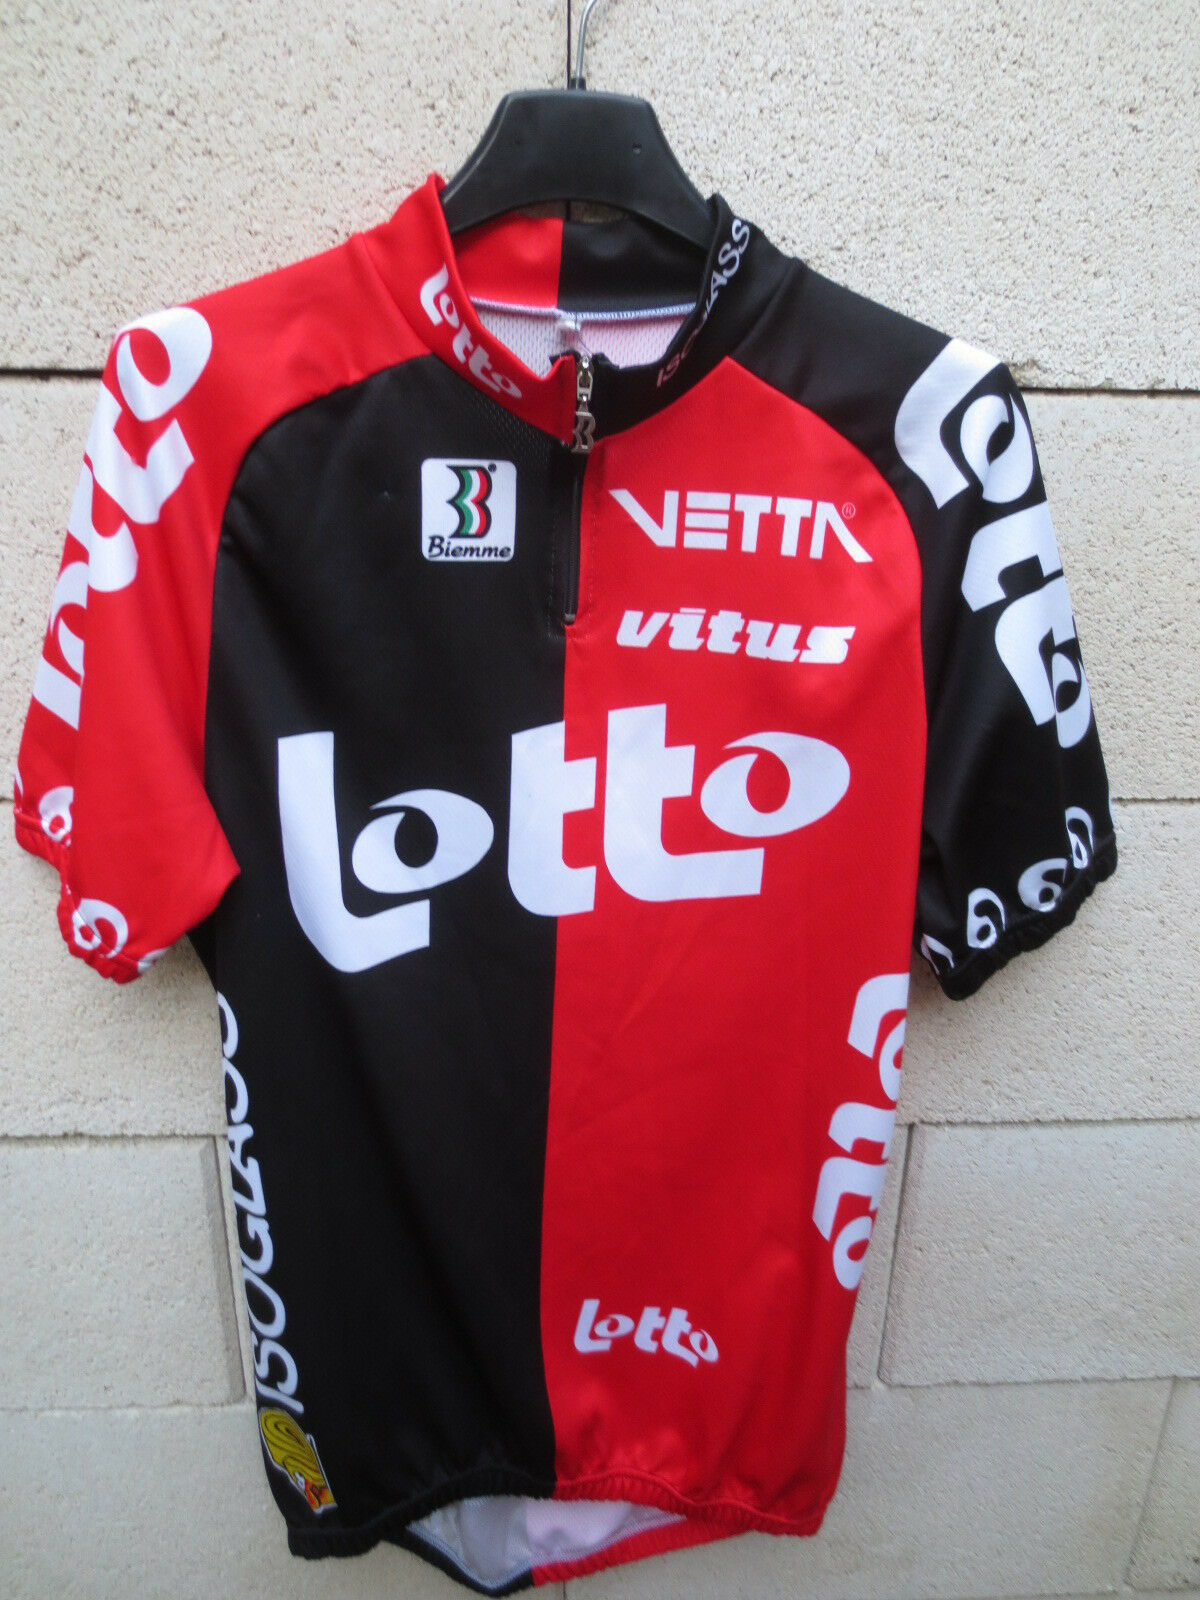 Vintage Radfahren jersey lotto cylider tour france 1995 jersey shirt peacoat xl